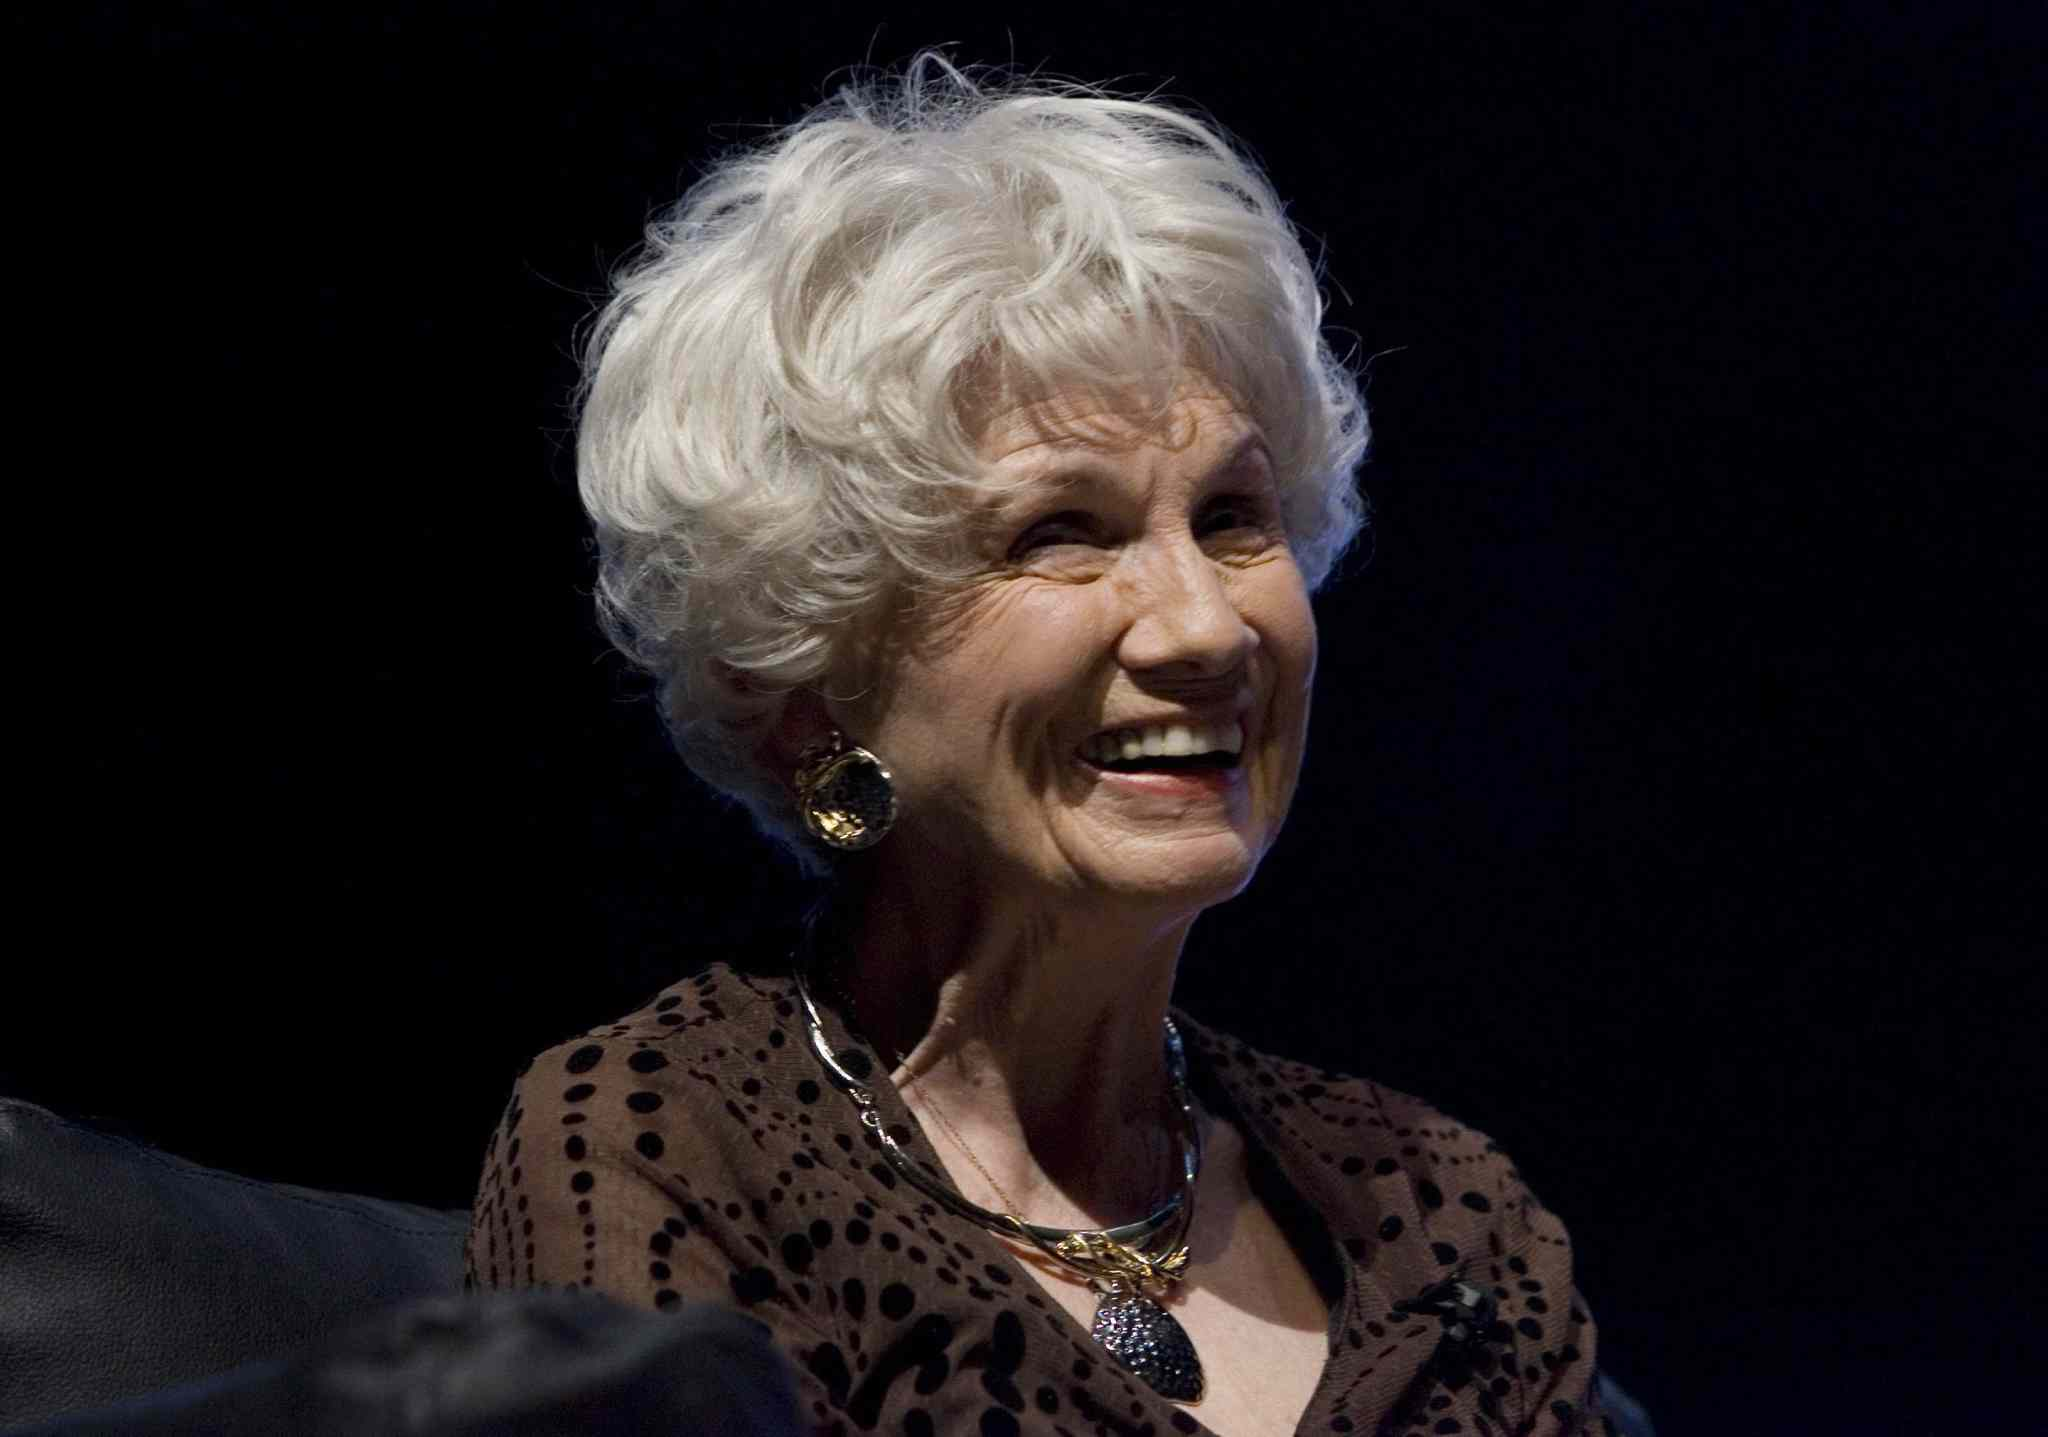 Alice Munro is the 110th Nobel laureate in literature and only the 13th woman to receive the distinction.